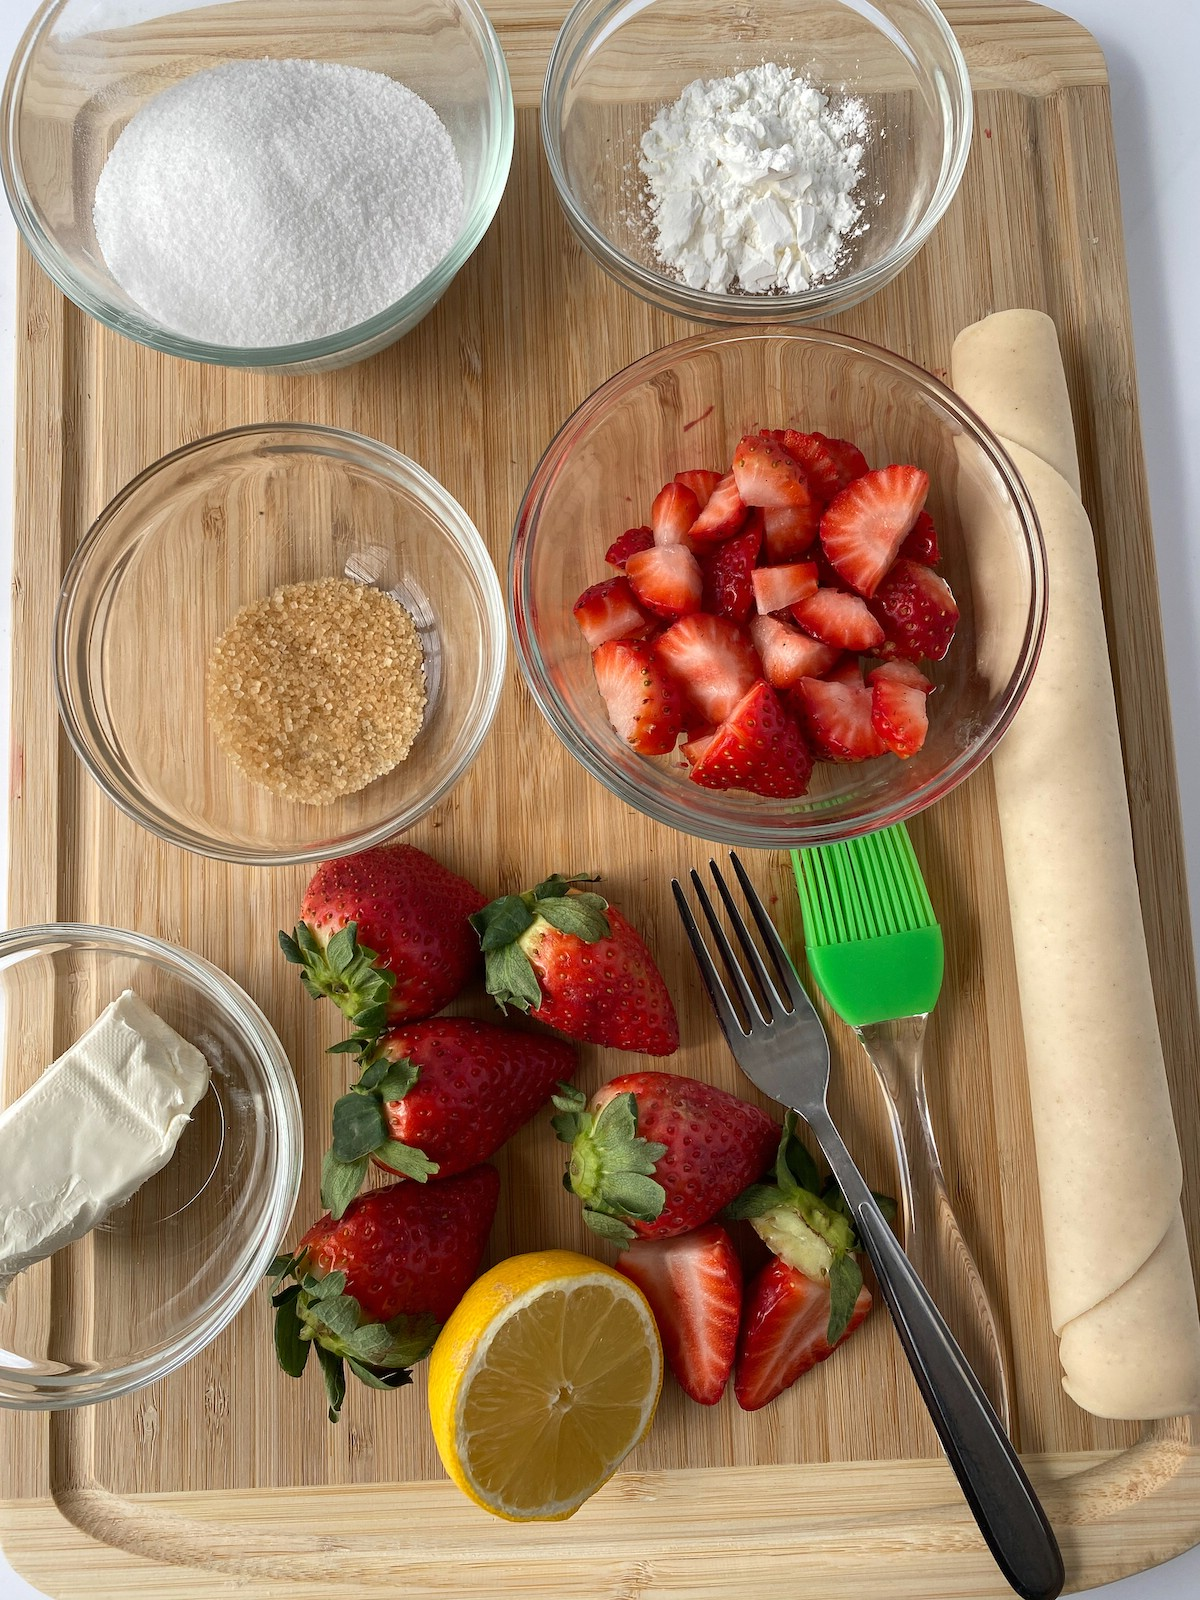 Ingredients for strawberry hand pies laying on cutting board